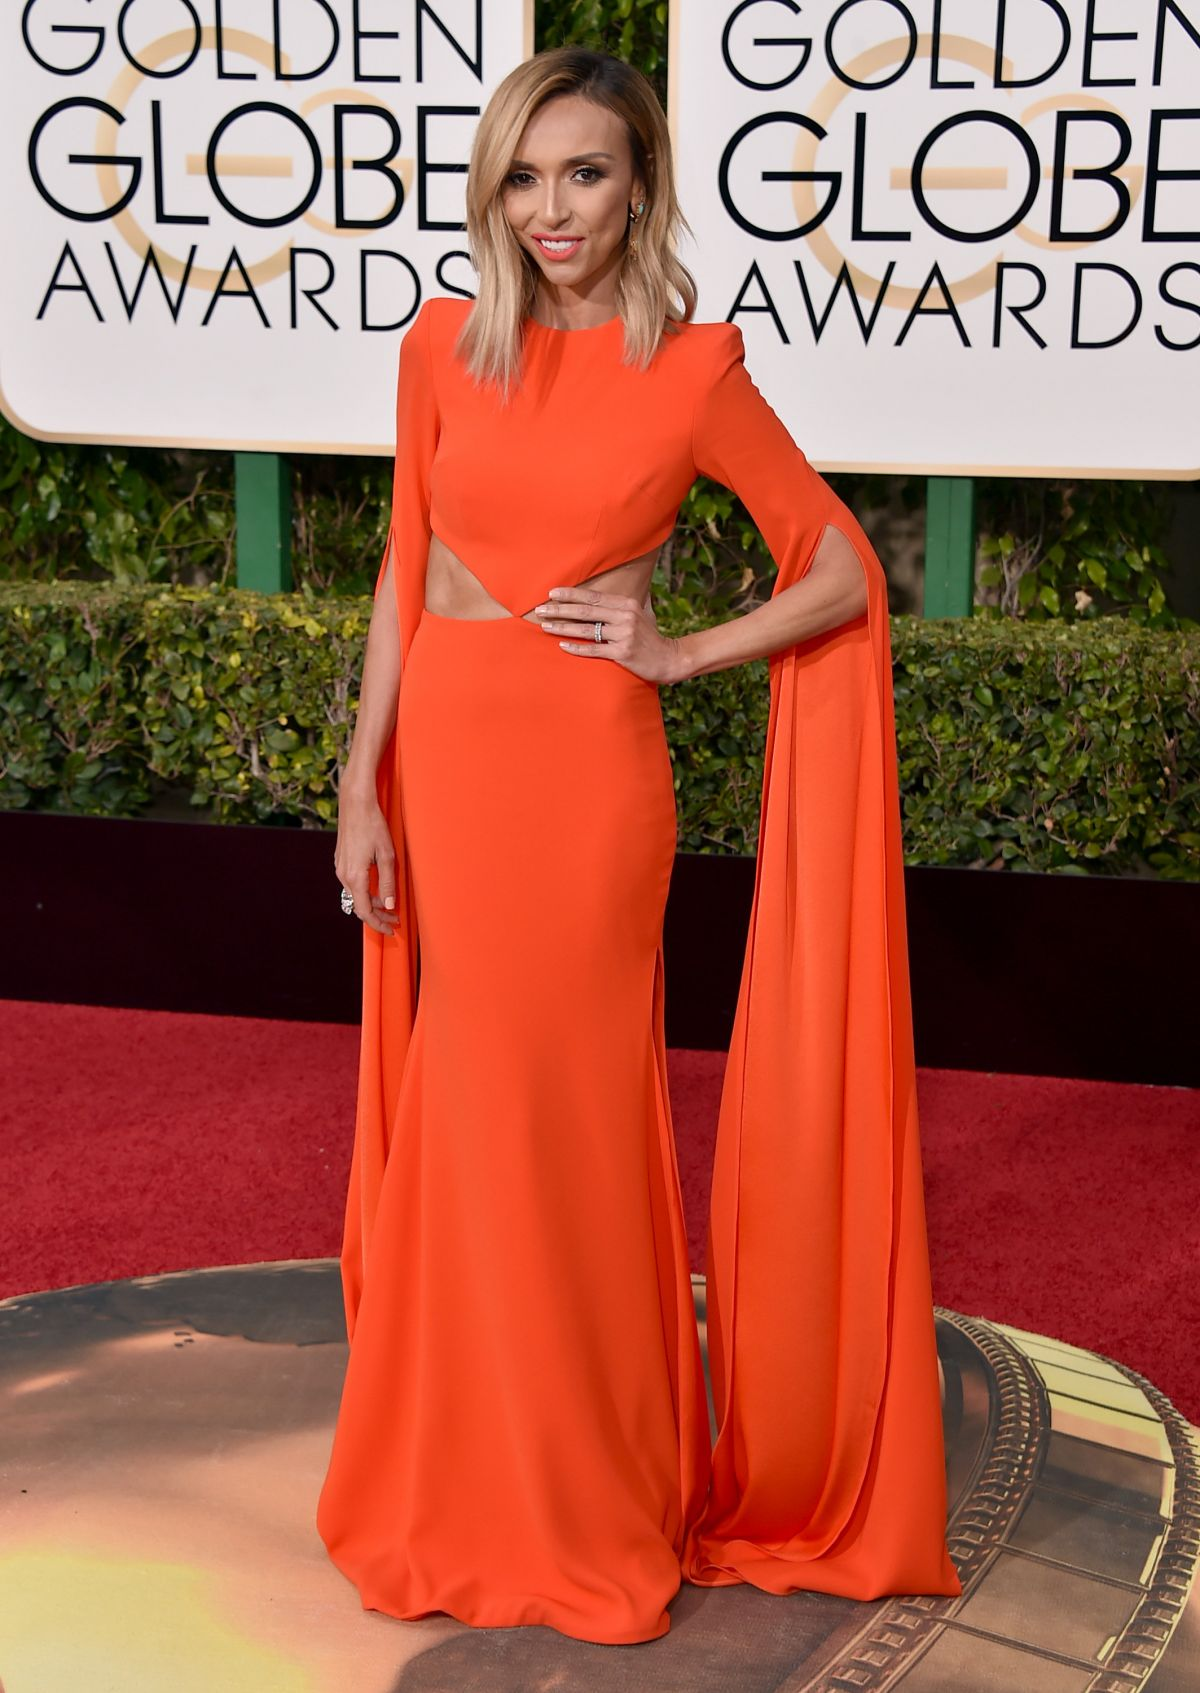 GIULIANA RANCIC at 73rd Annual Golden Globe Awards in Beverly Hills 10/01/2016